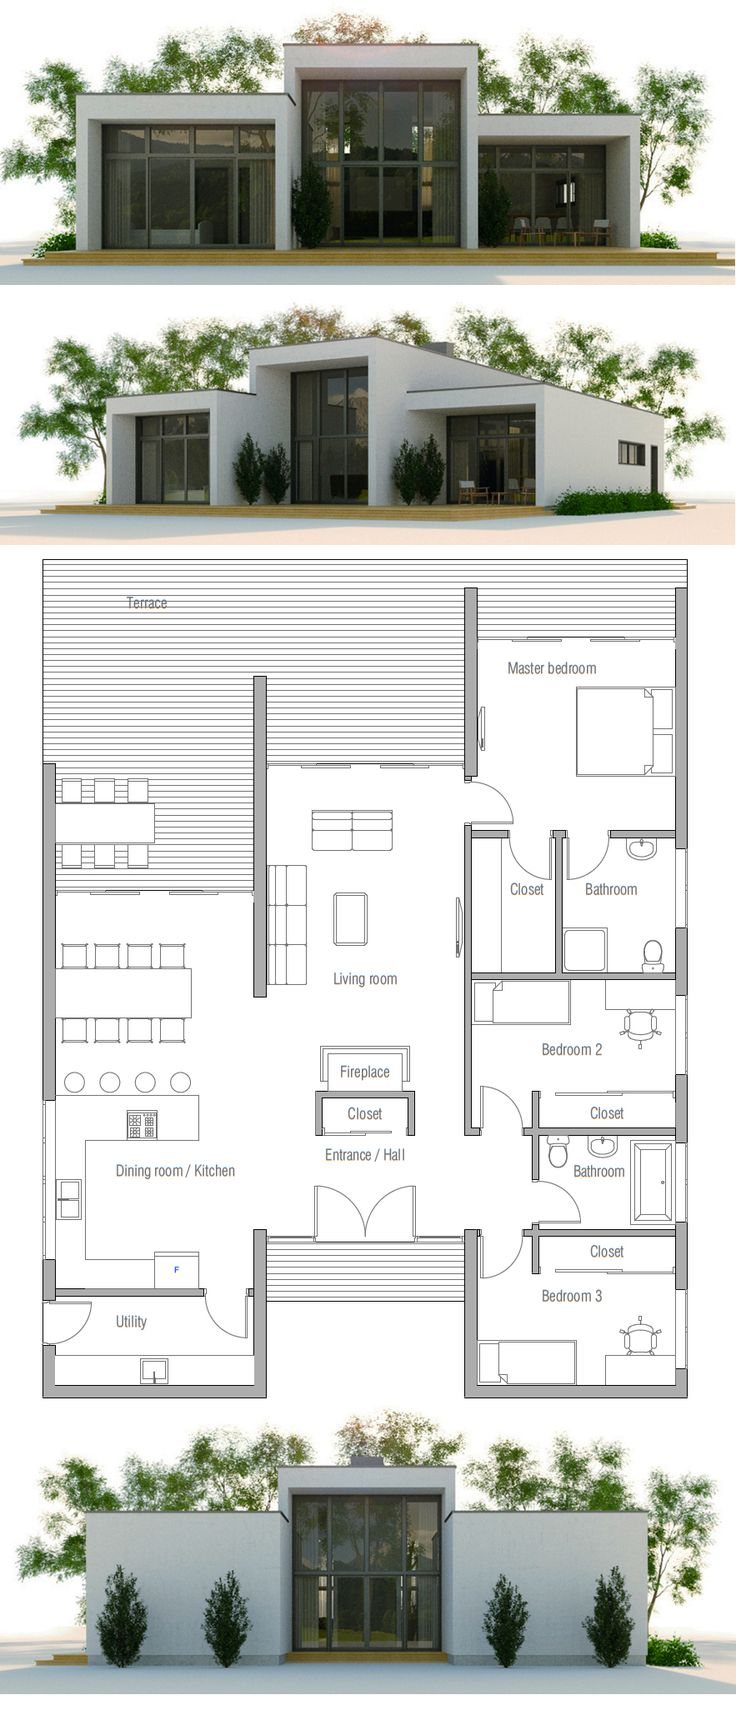 Best 25 minimalist house ideas on pinterest modern for Minimalist house floor plans